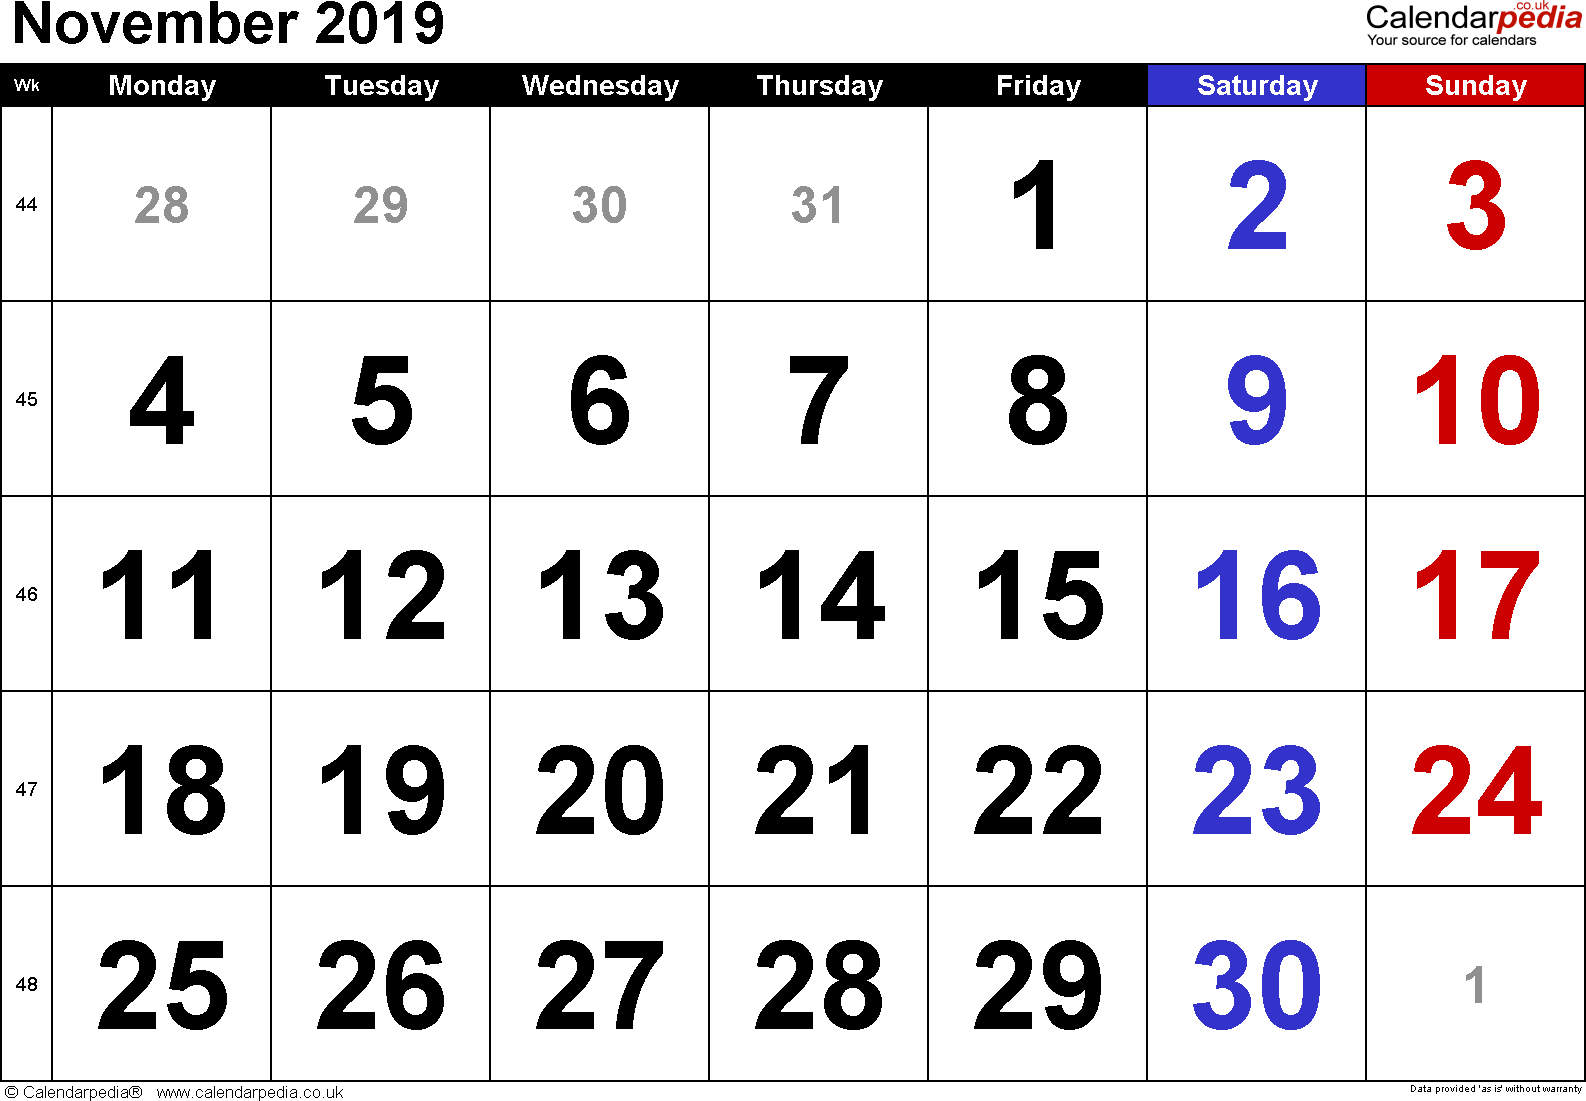 Calendar November 2019, landscape orientation, large numerals, 1 page, with UK bank holidays and week numbers